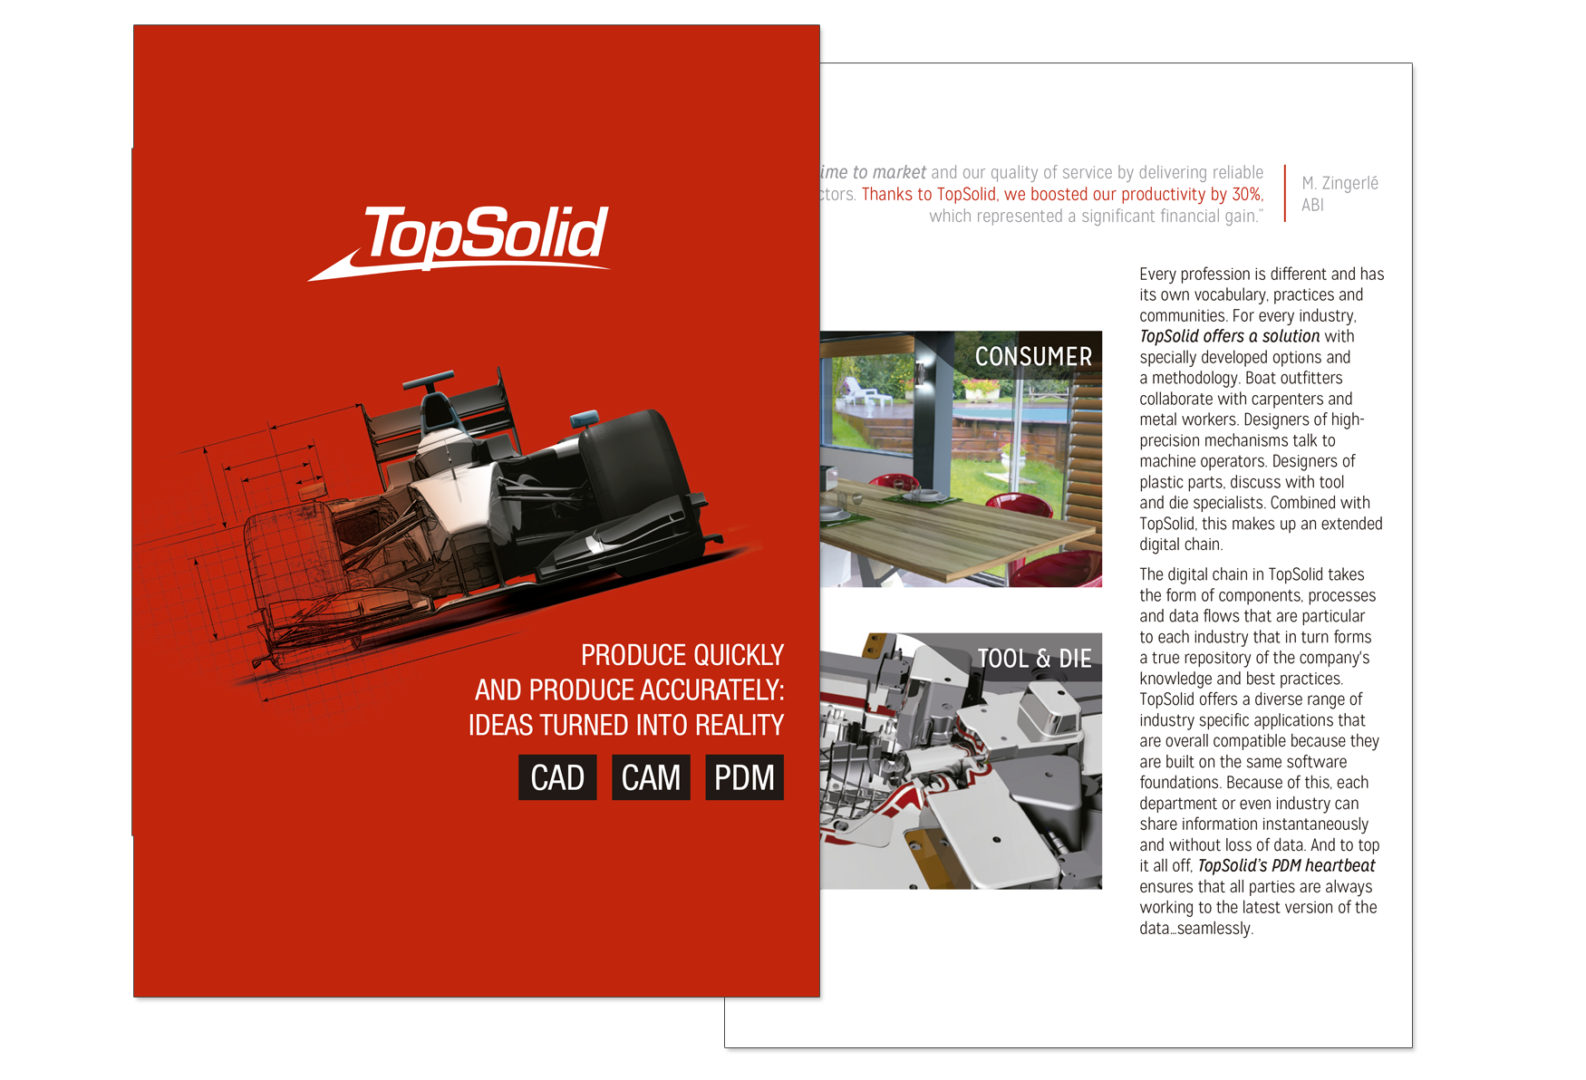 TopSolid Corporative